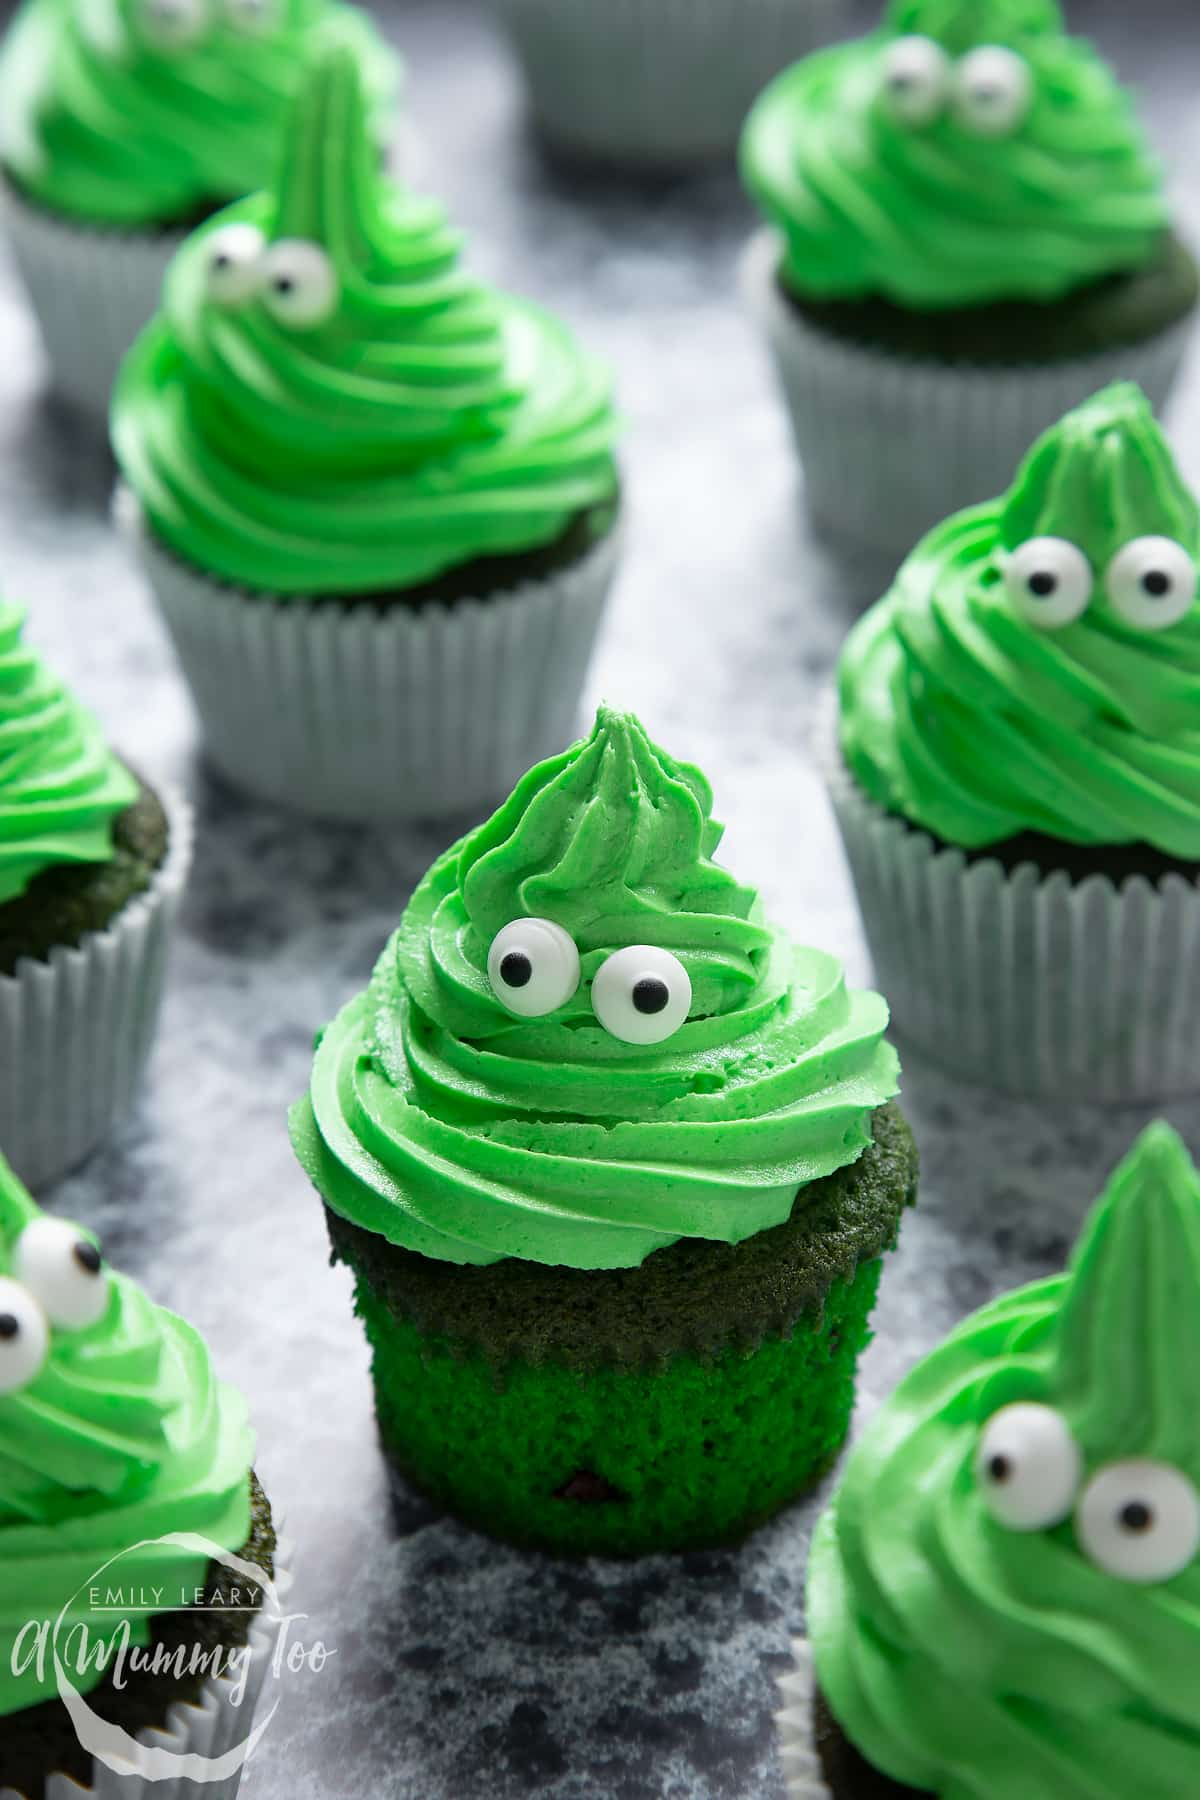 Green monster cakes made with dyed-green chocolate chip cupcakes topped with green peppermint frosting with added candy eyes. One has been unwrapped.